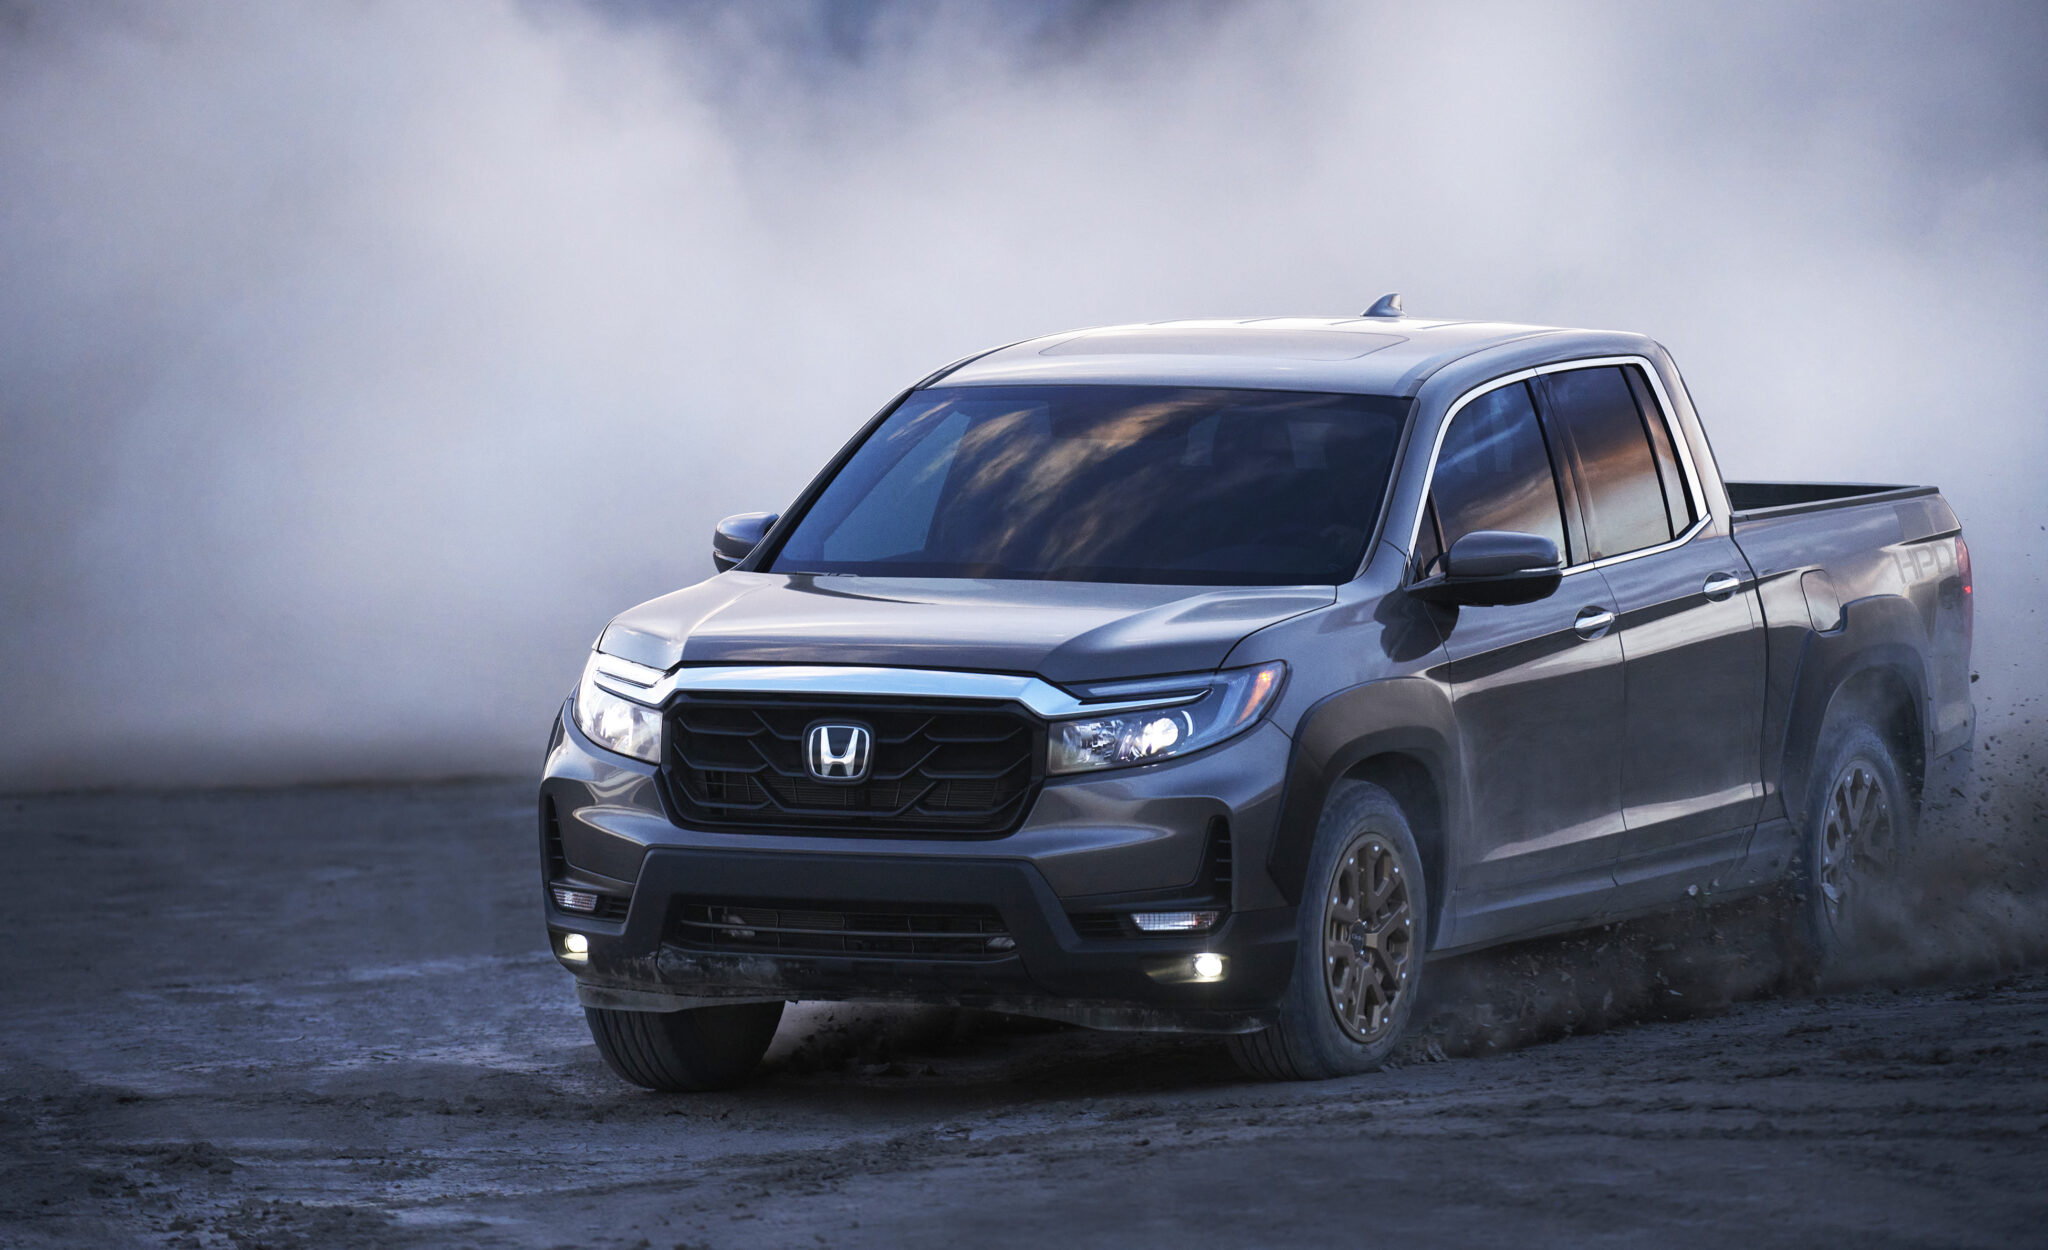 NEW HONDA RIDGELINE CUTS AN IMPOSING FIGURE